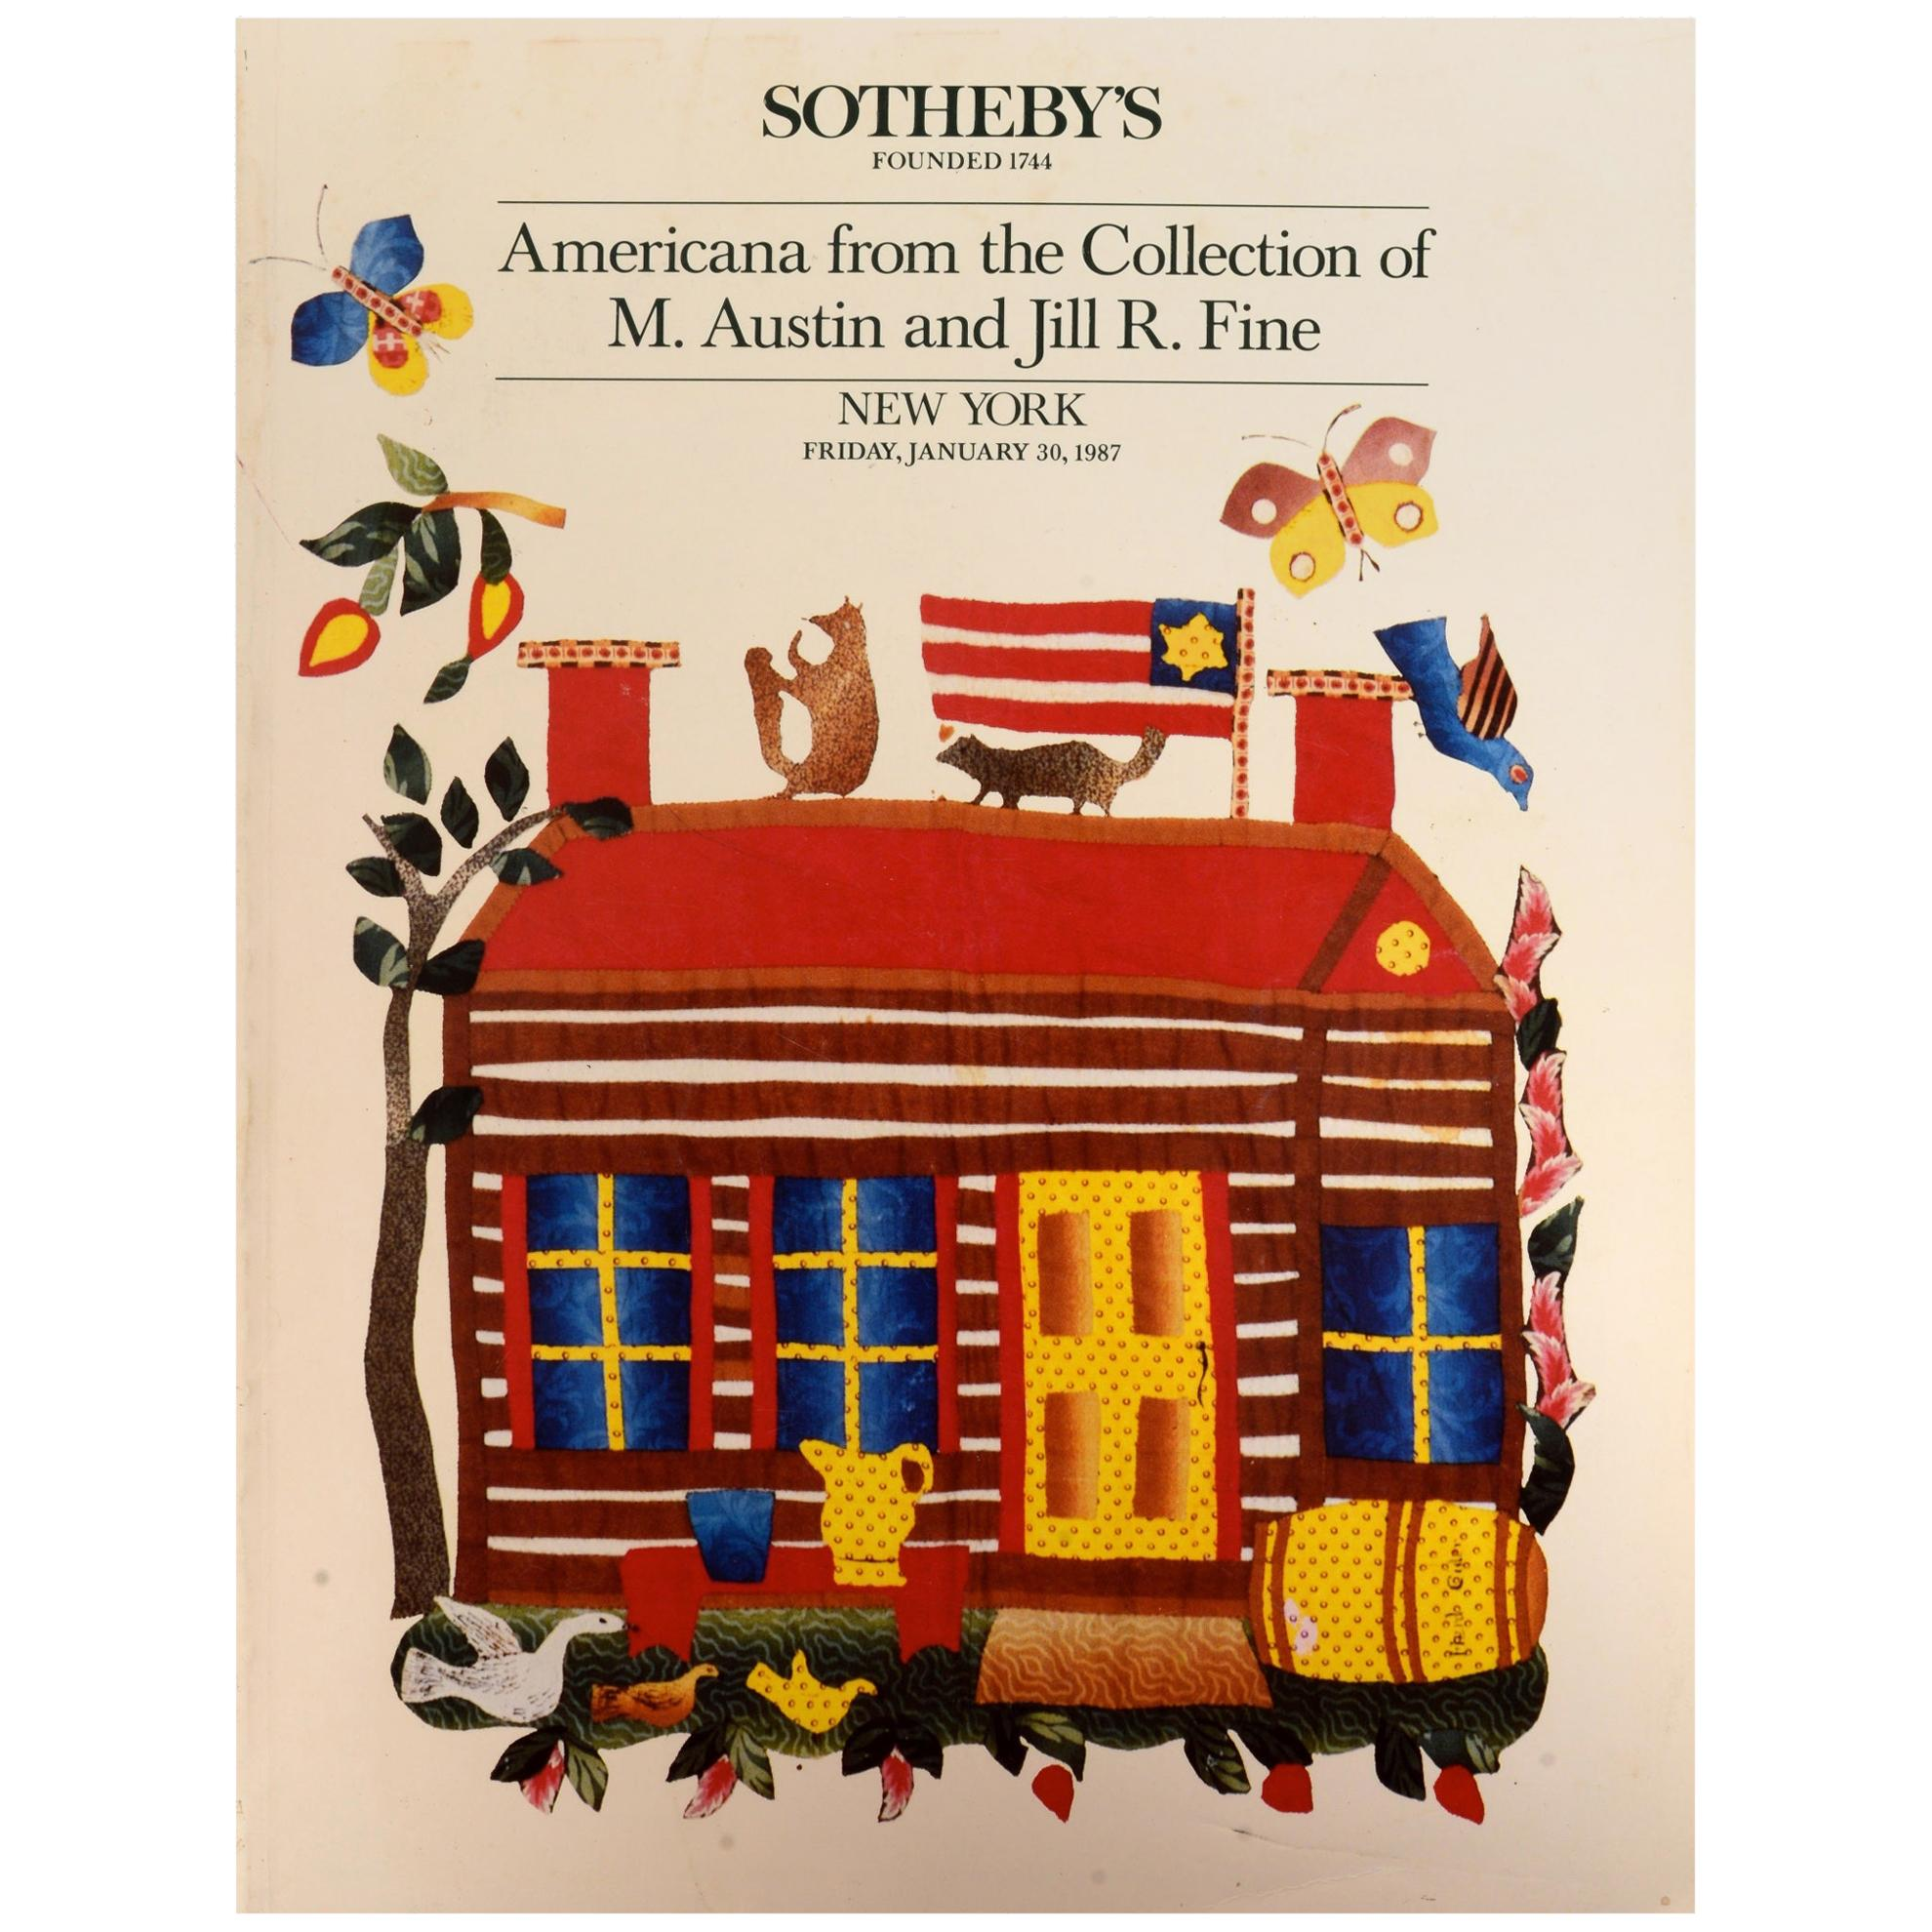 Sotheby's: Americana the Collection of M. Austin & Jill R. Fine, 1/1987